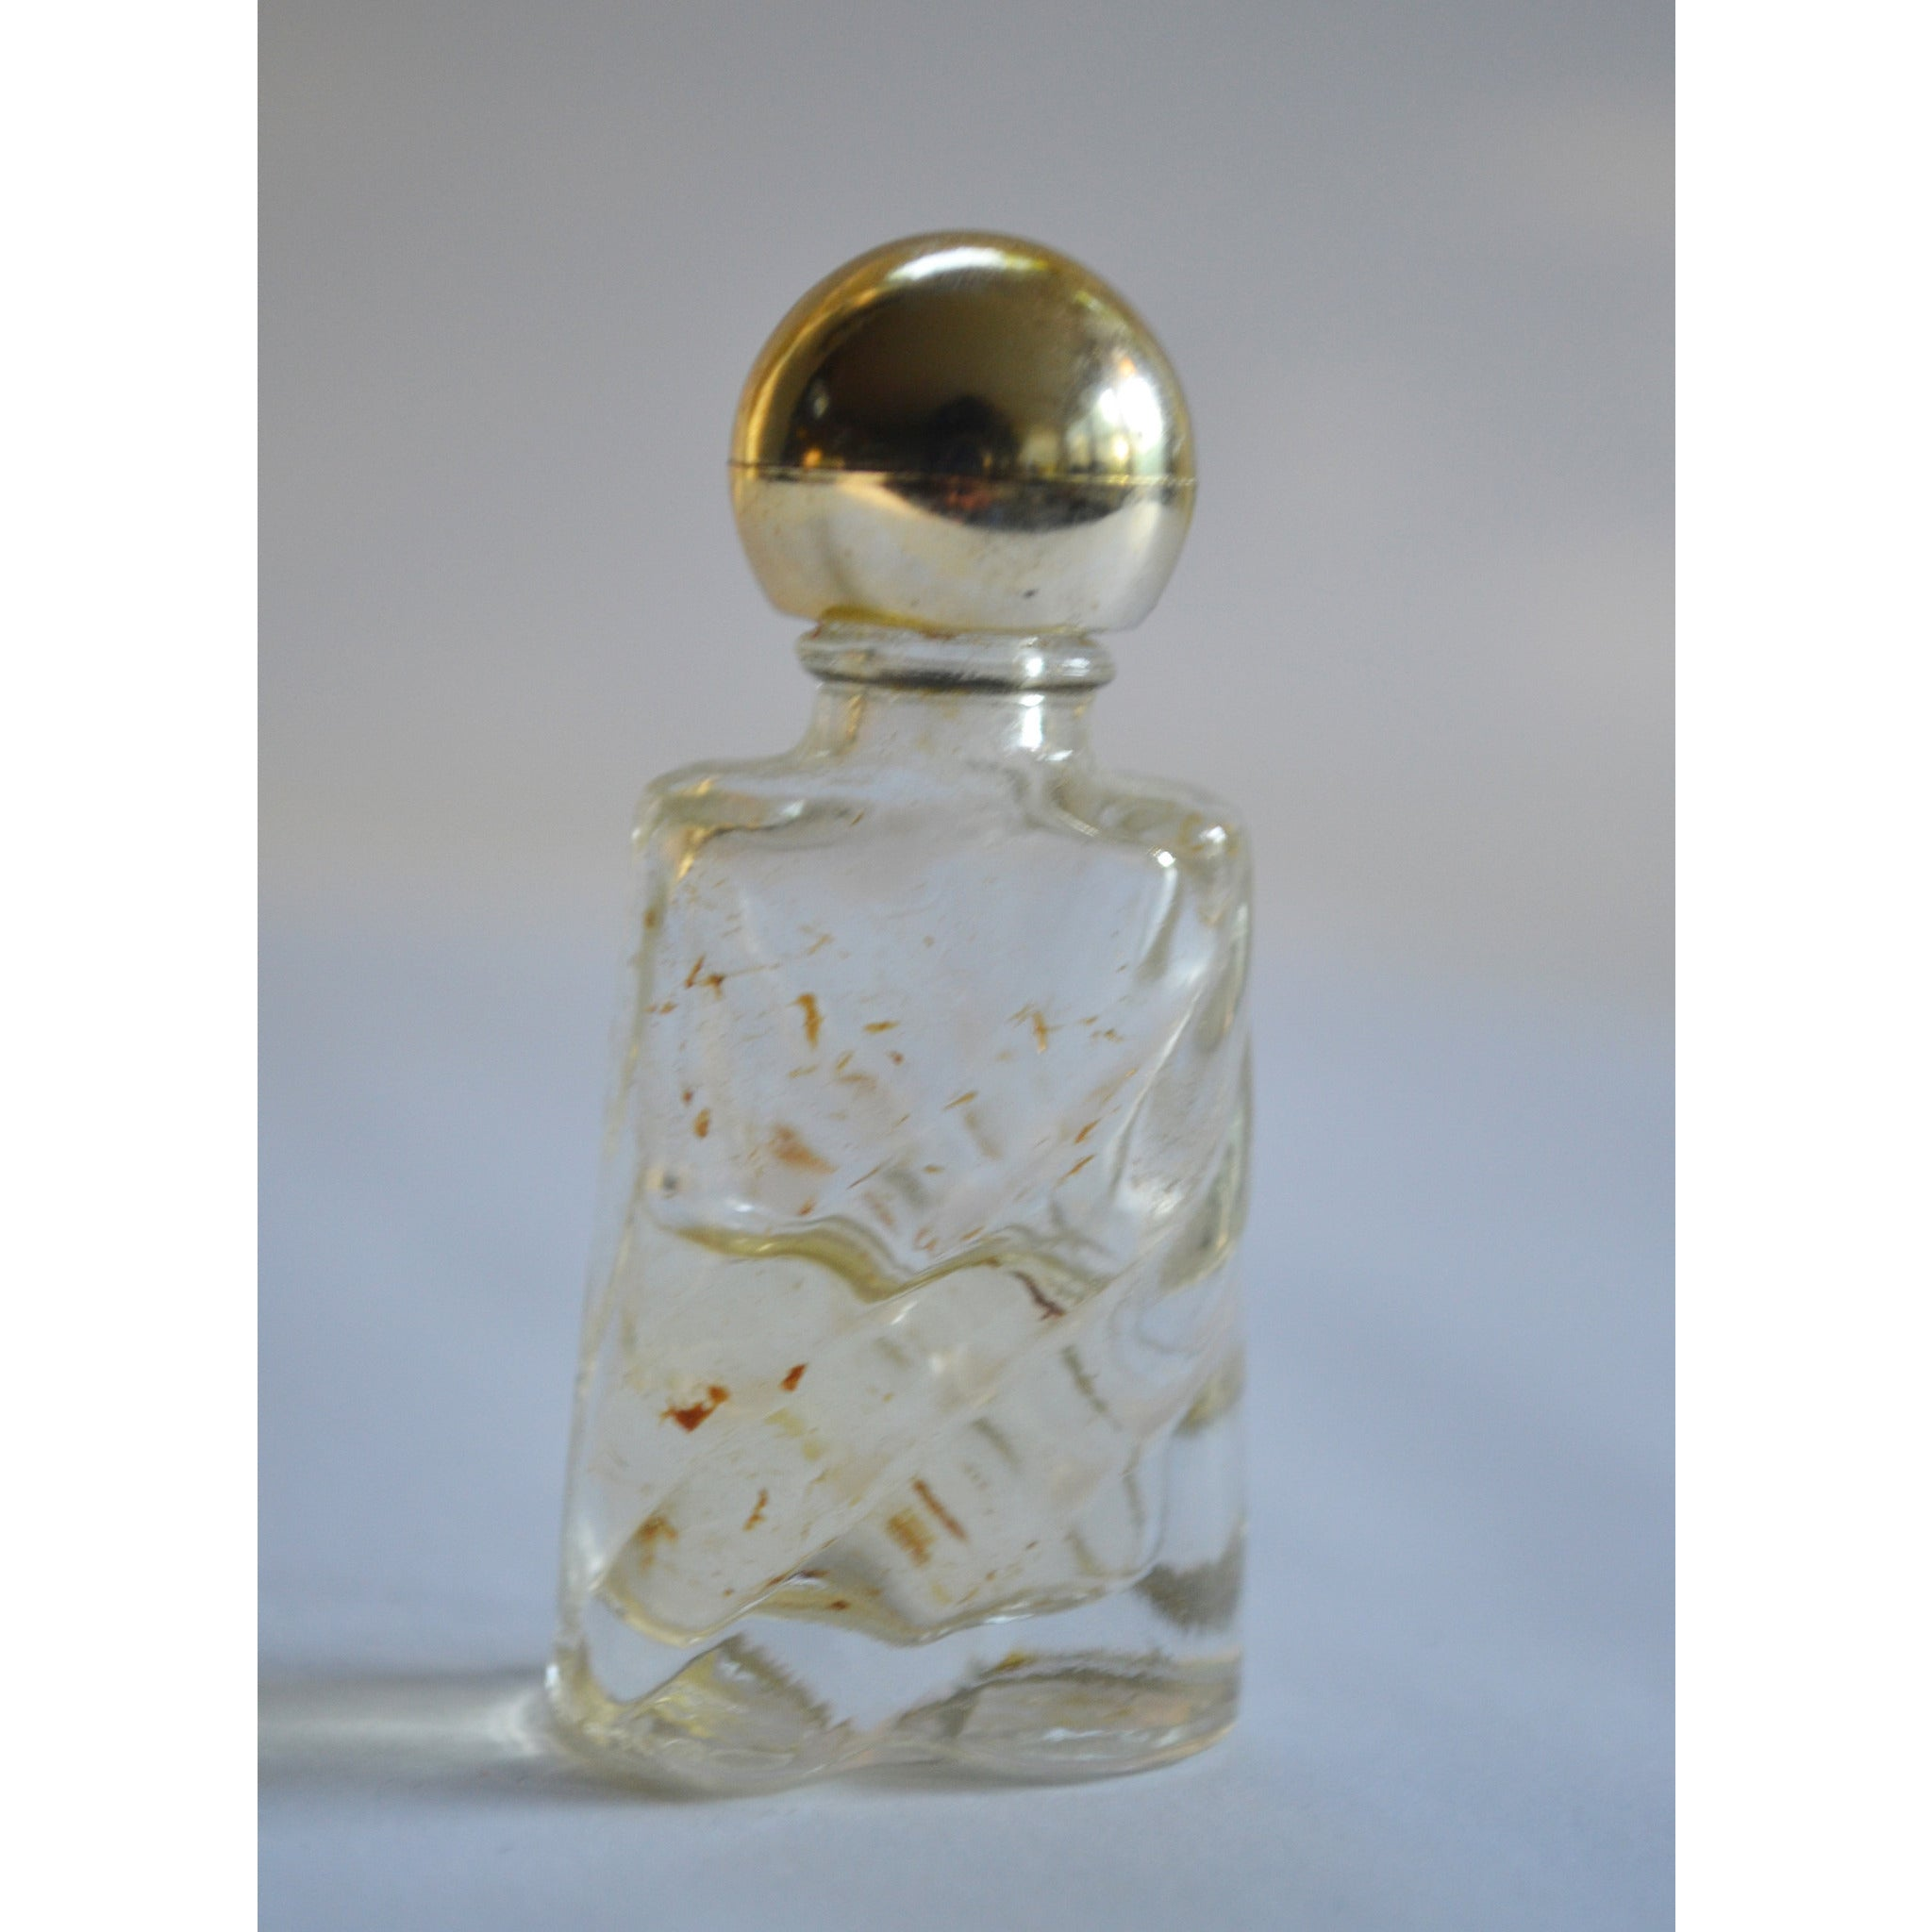 Vintage Senchal Perfume Mini By Charles of the Ritz